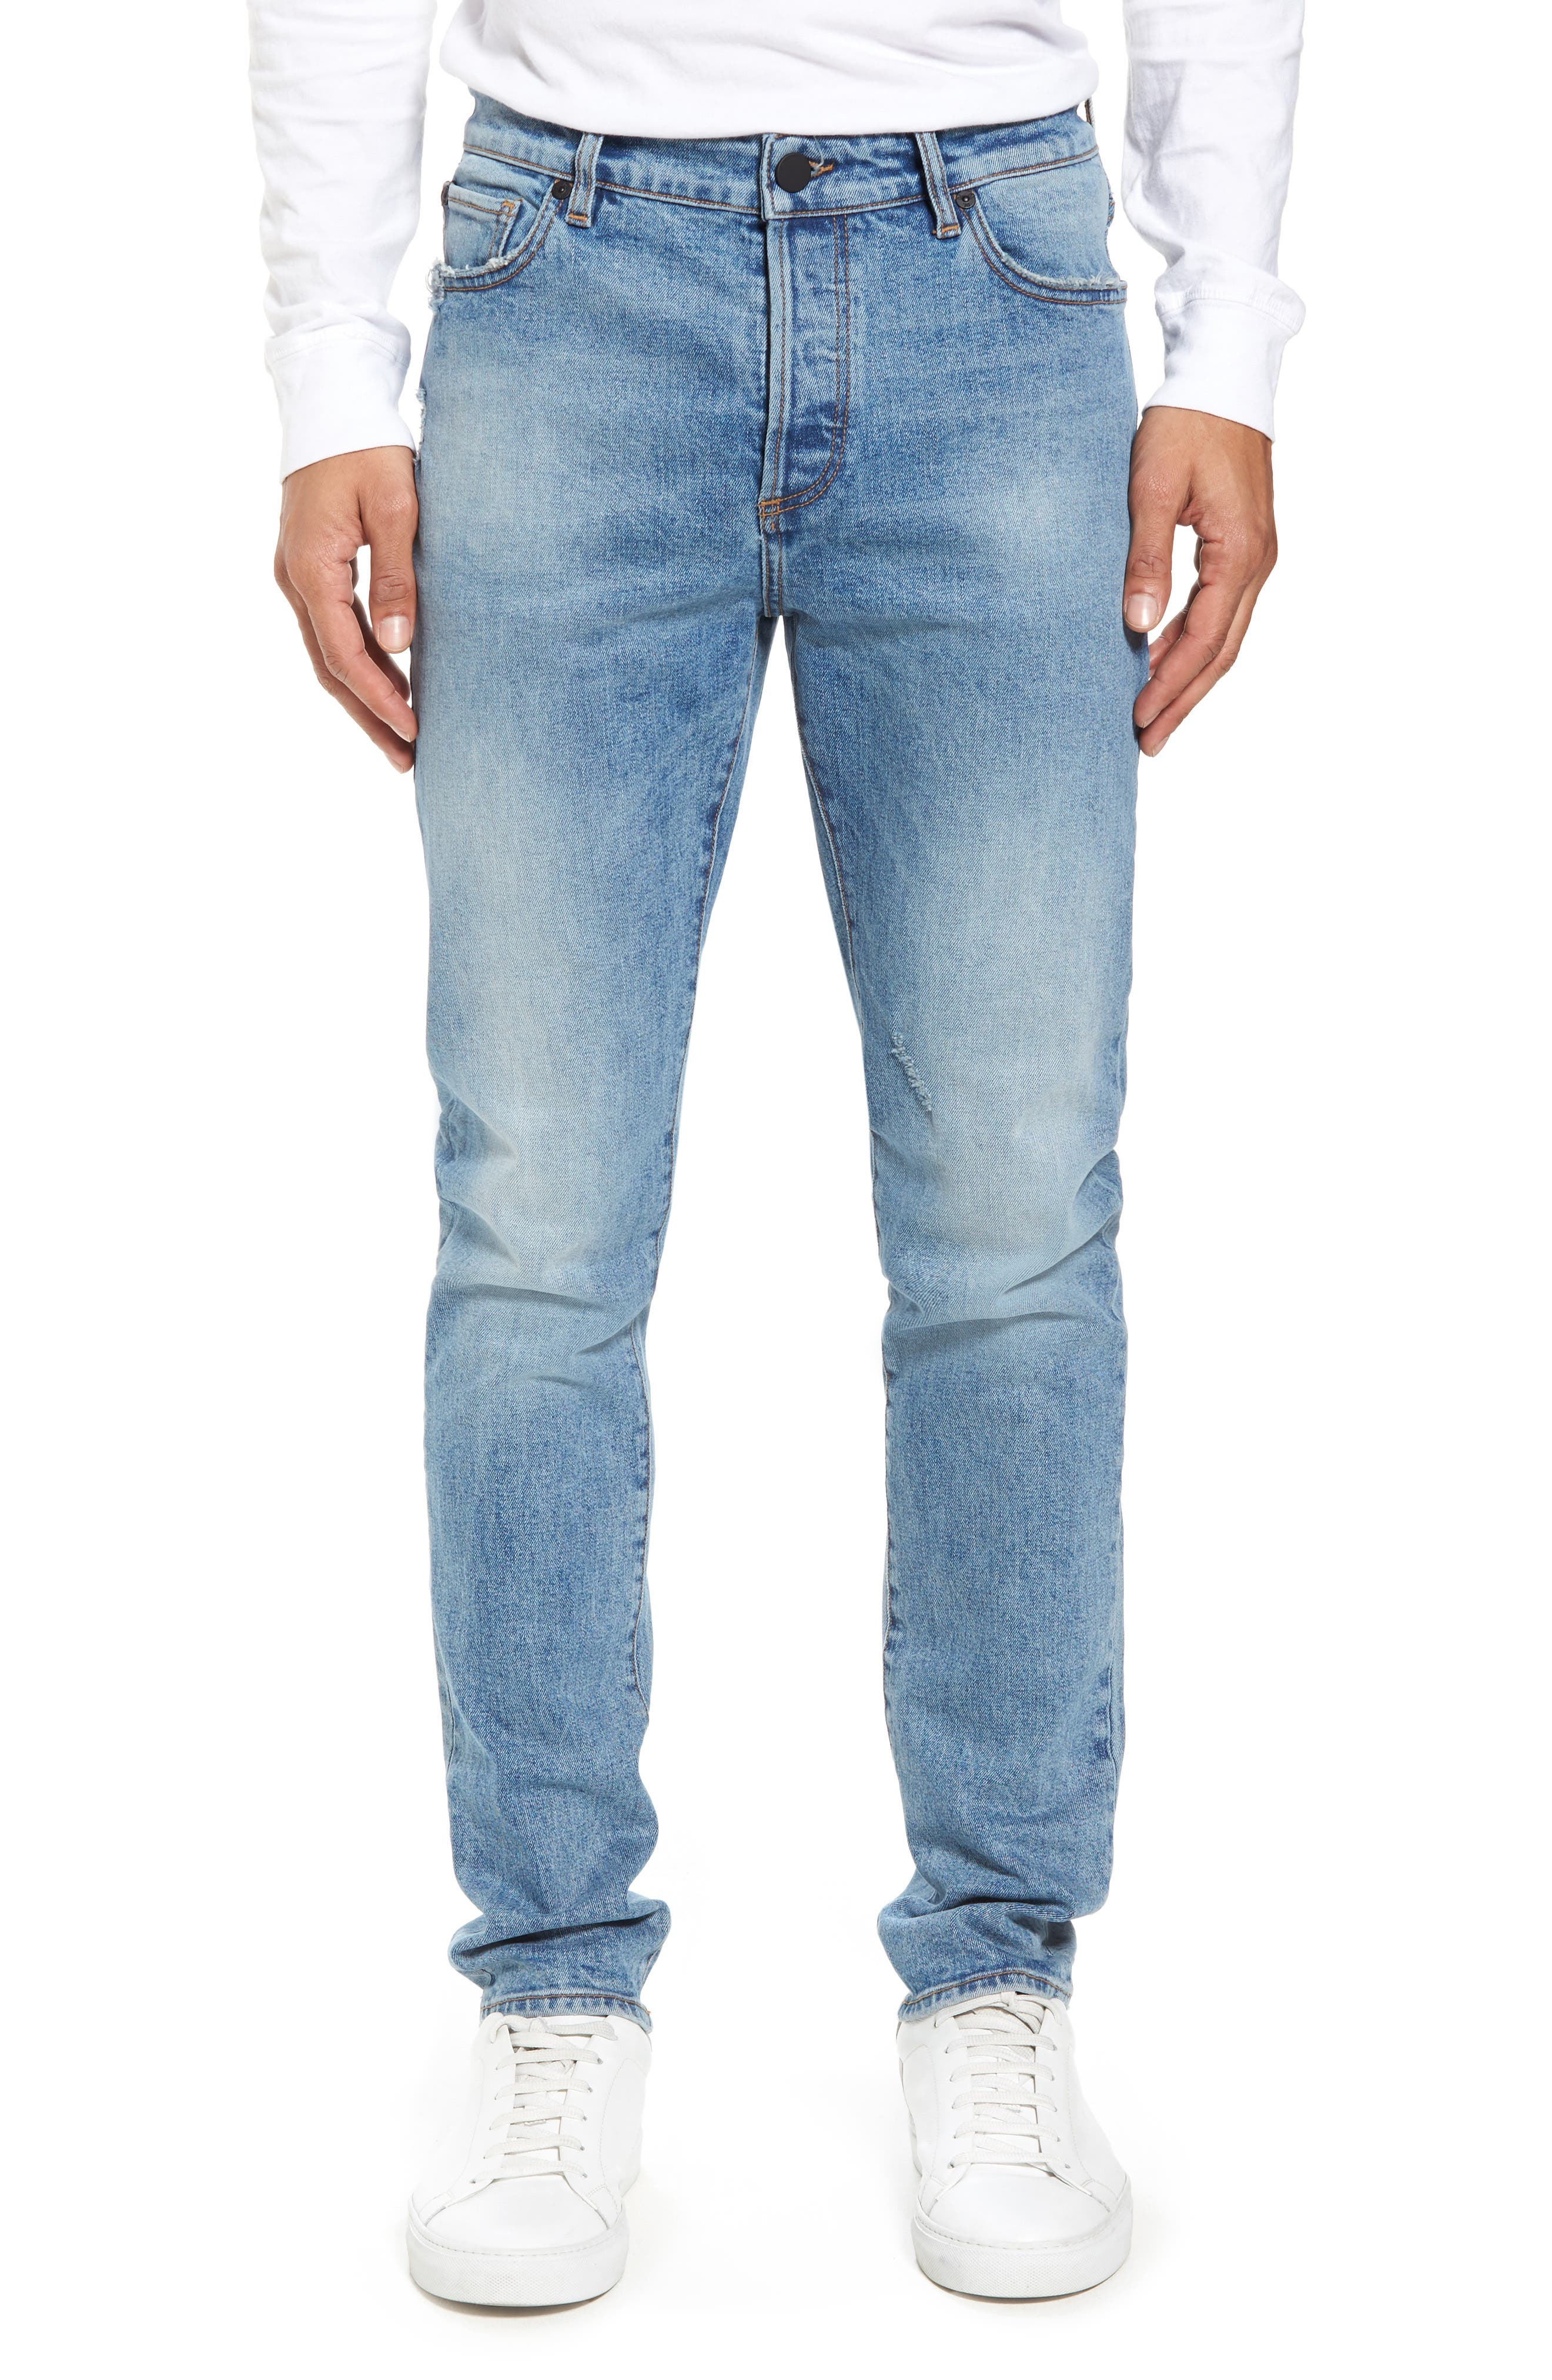 Cooper Slouchy Skinny Jeans,                         Main,                         color, Breathe